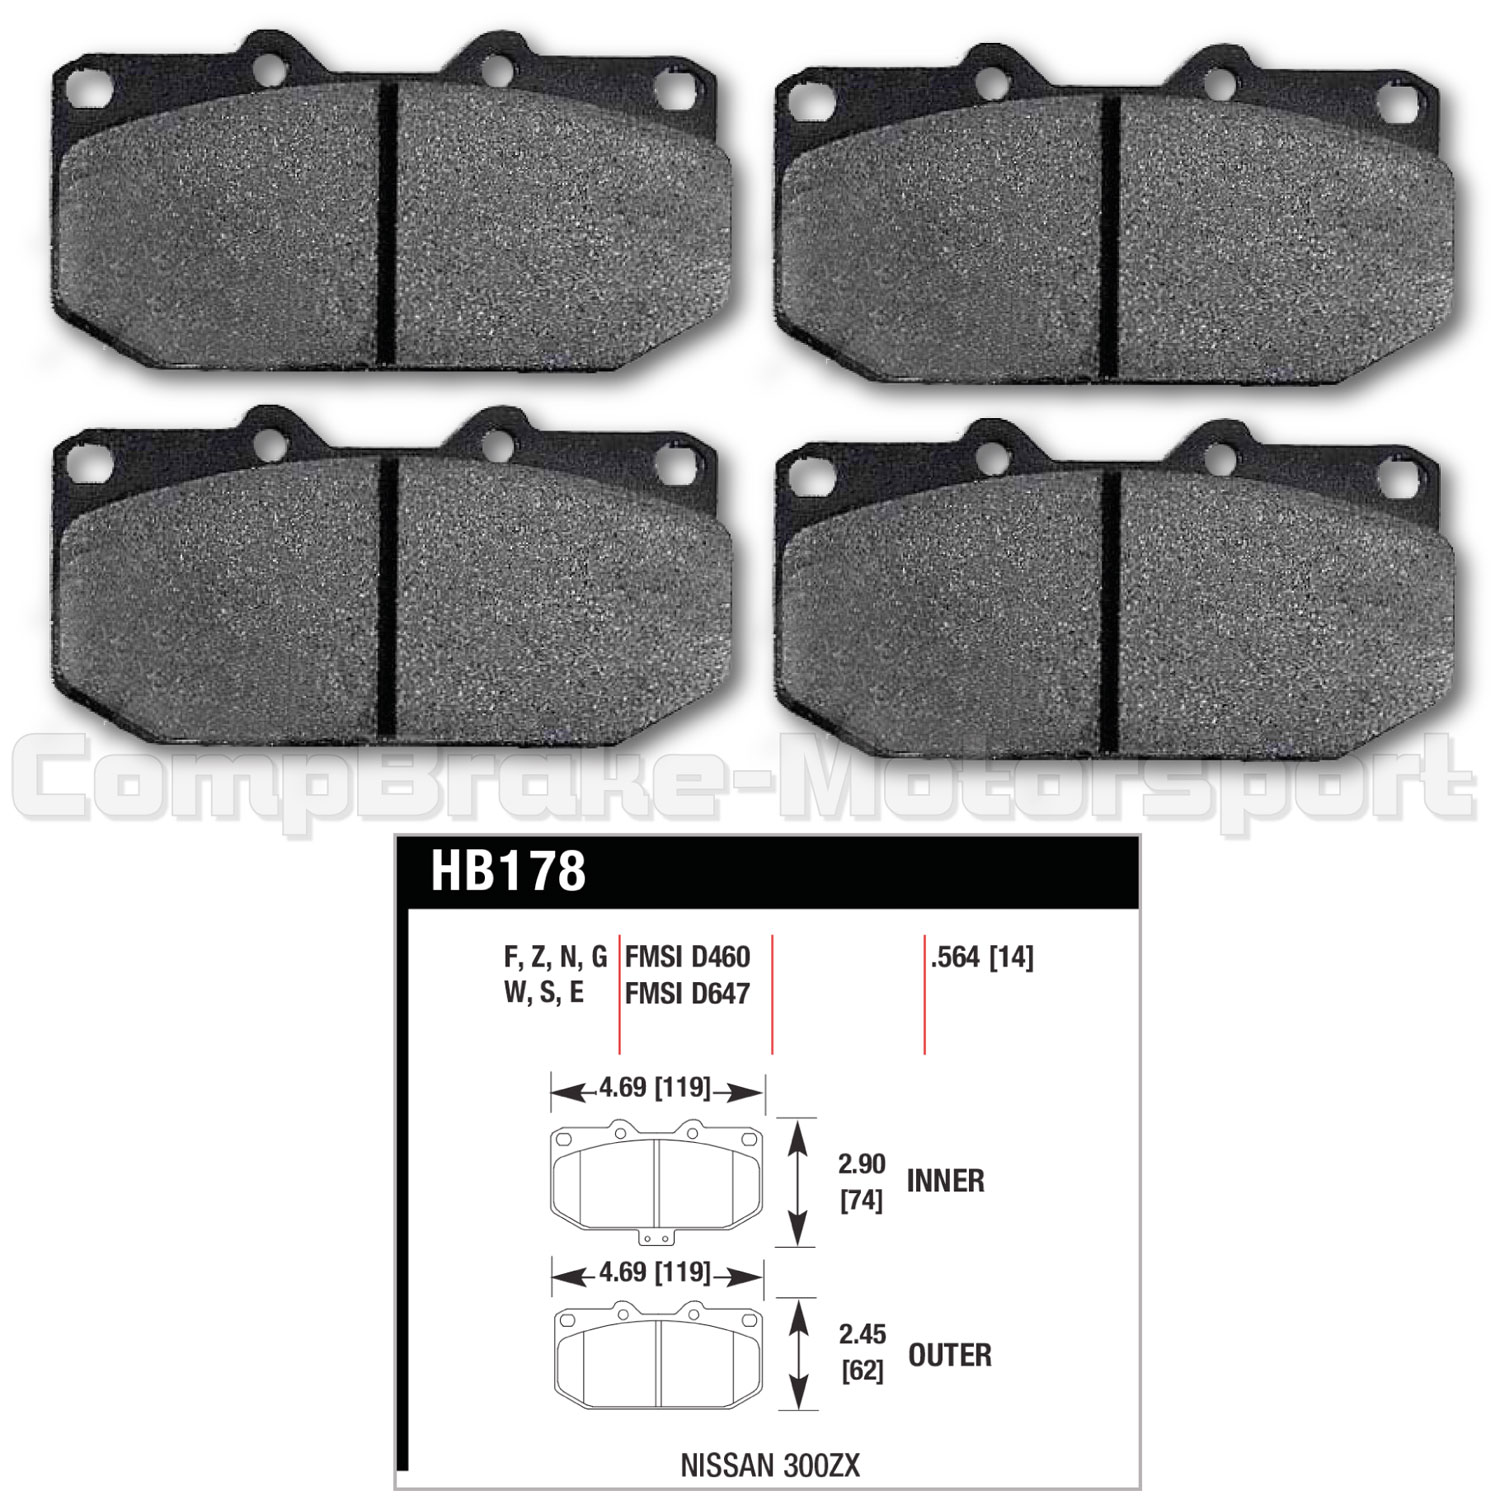 300zx Z31 Fuel Filter Location Hawk Brake Pads Hb178 F564 Hps Nissan Subaru 4 Pot Front Set